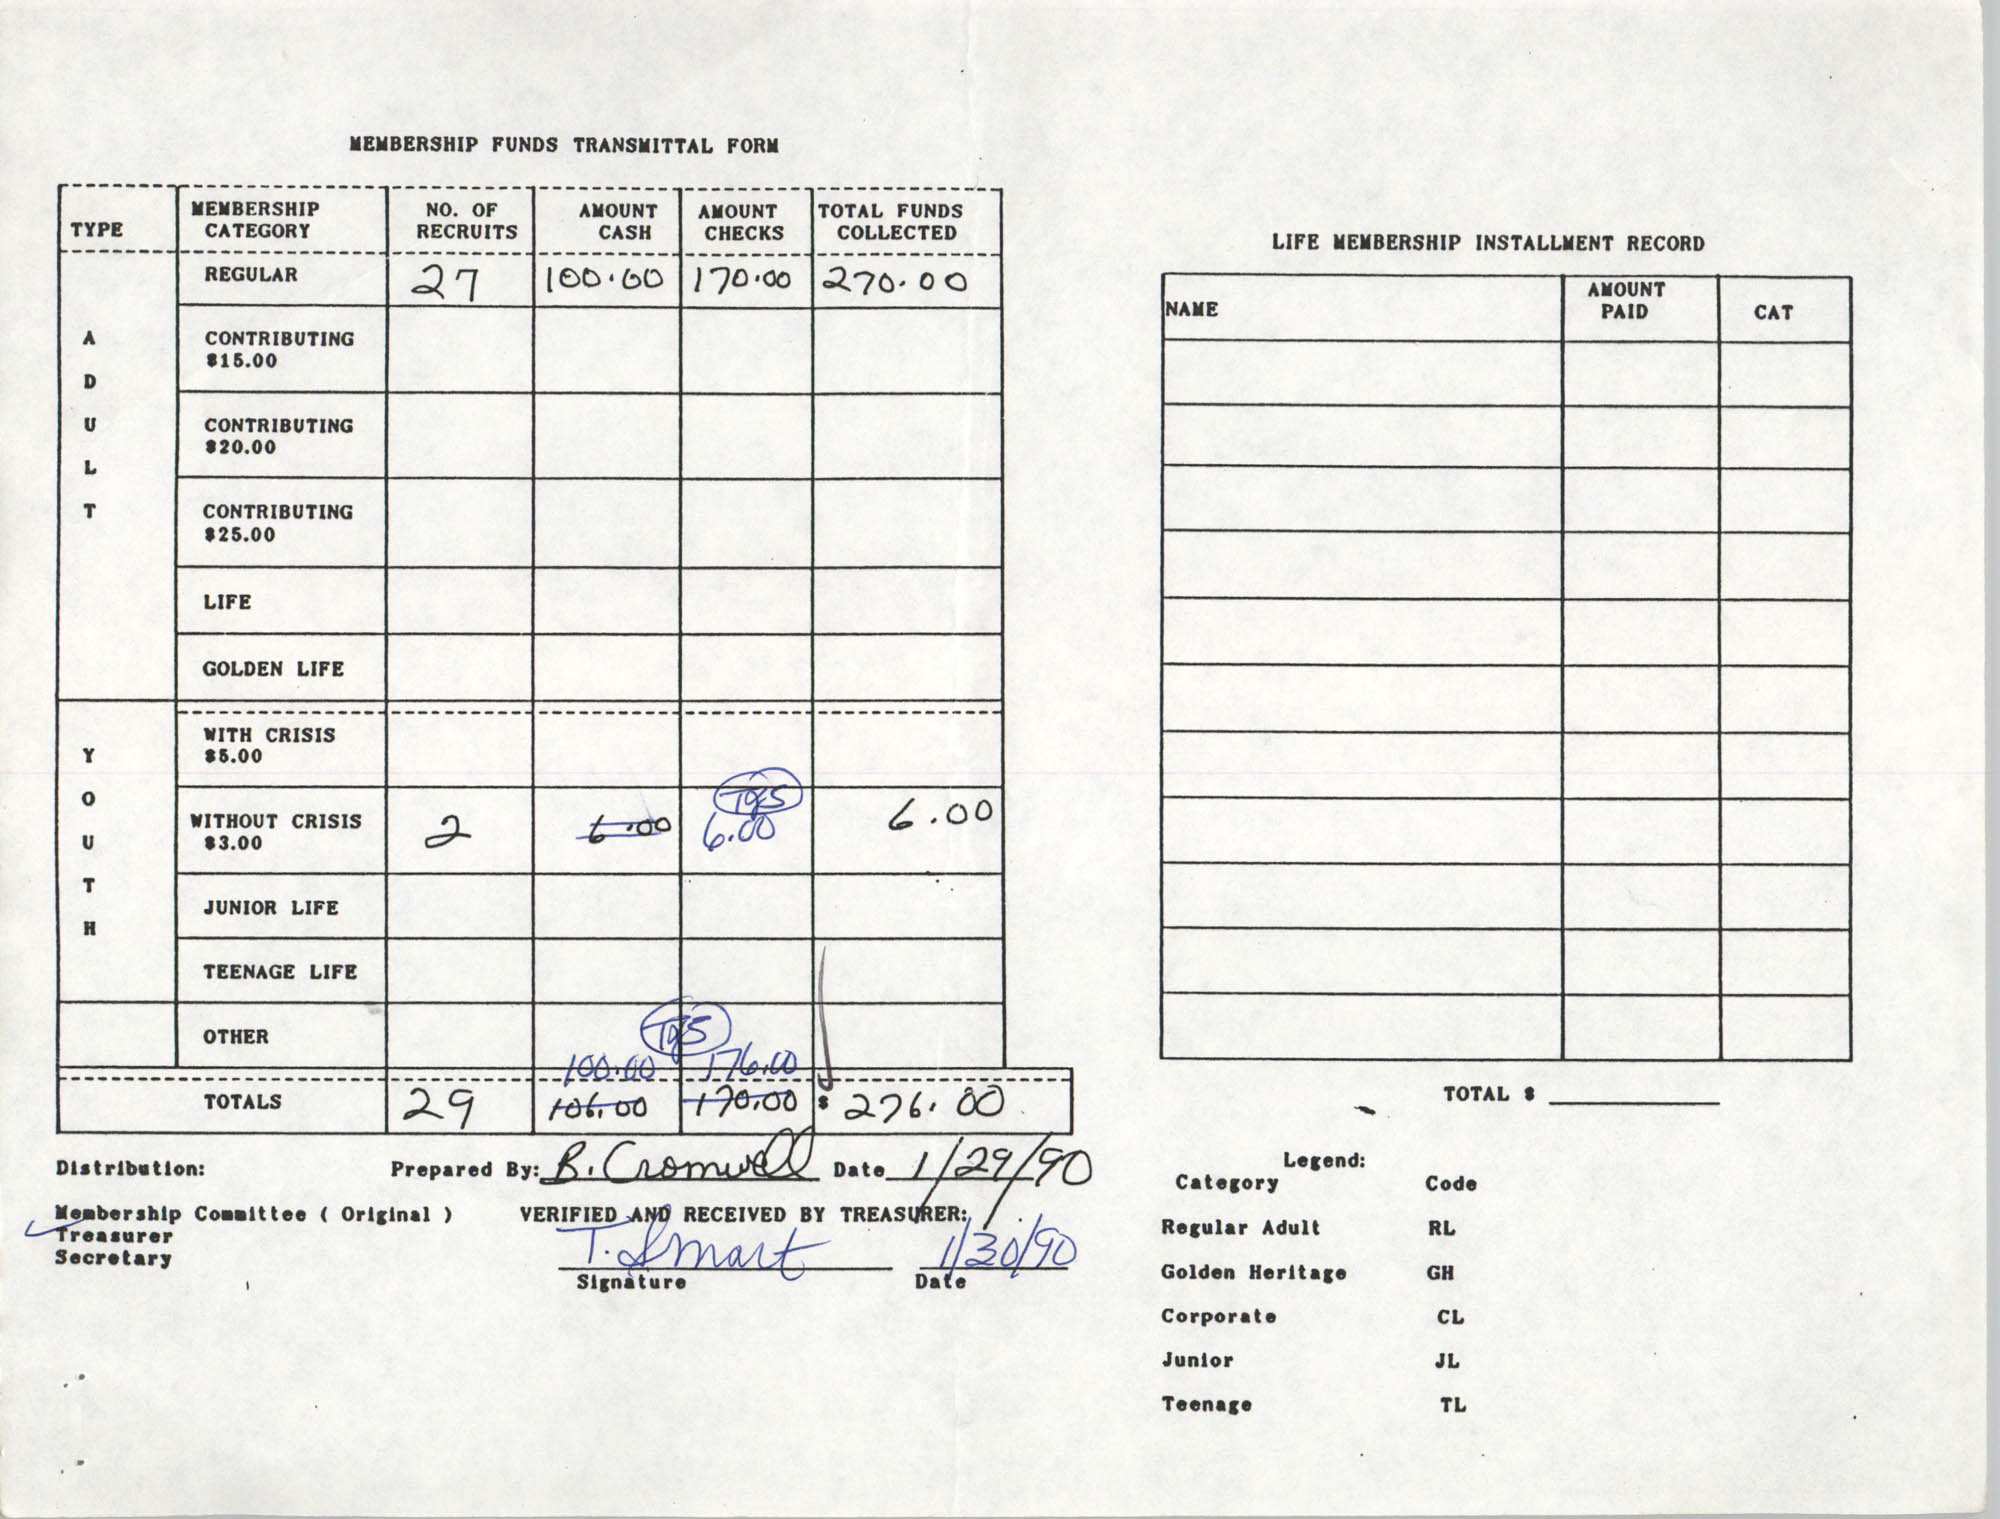 Charleston Branch of the NAACP Membership Funds Transmittal Form, February 1990, Page 1